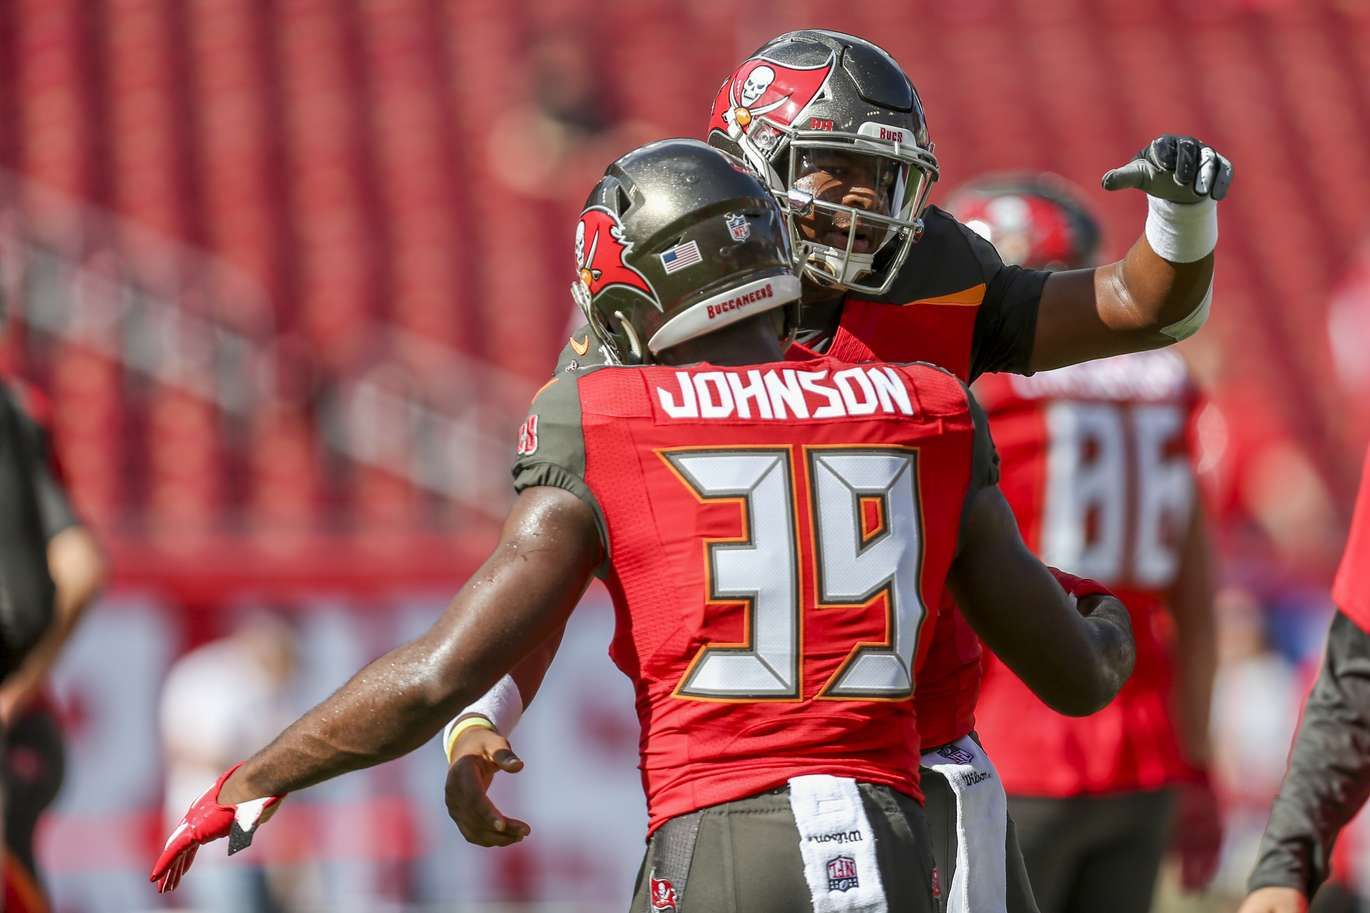 Photos Bucs Fall To Falcons In Season Finale Dirk Koetter S Final Game Tampa Bay Bucs Tampa Bay Falcons